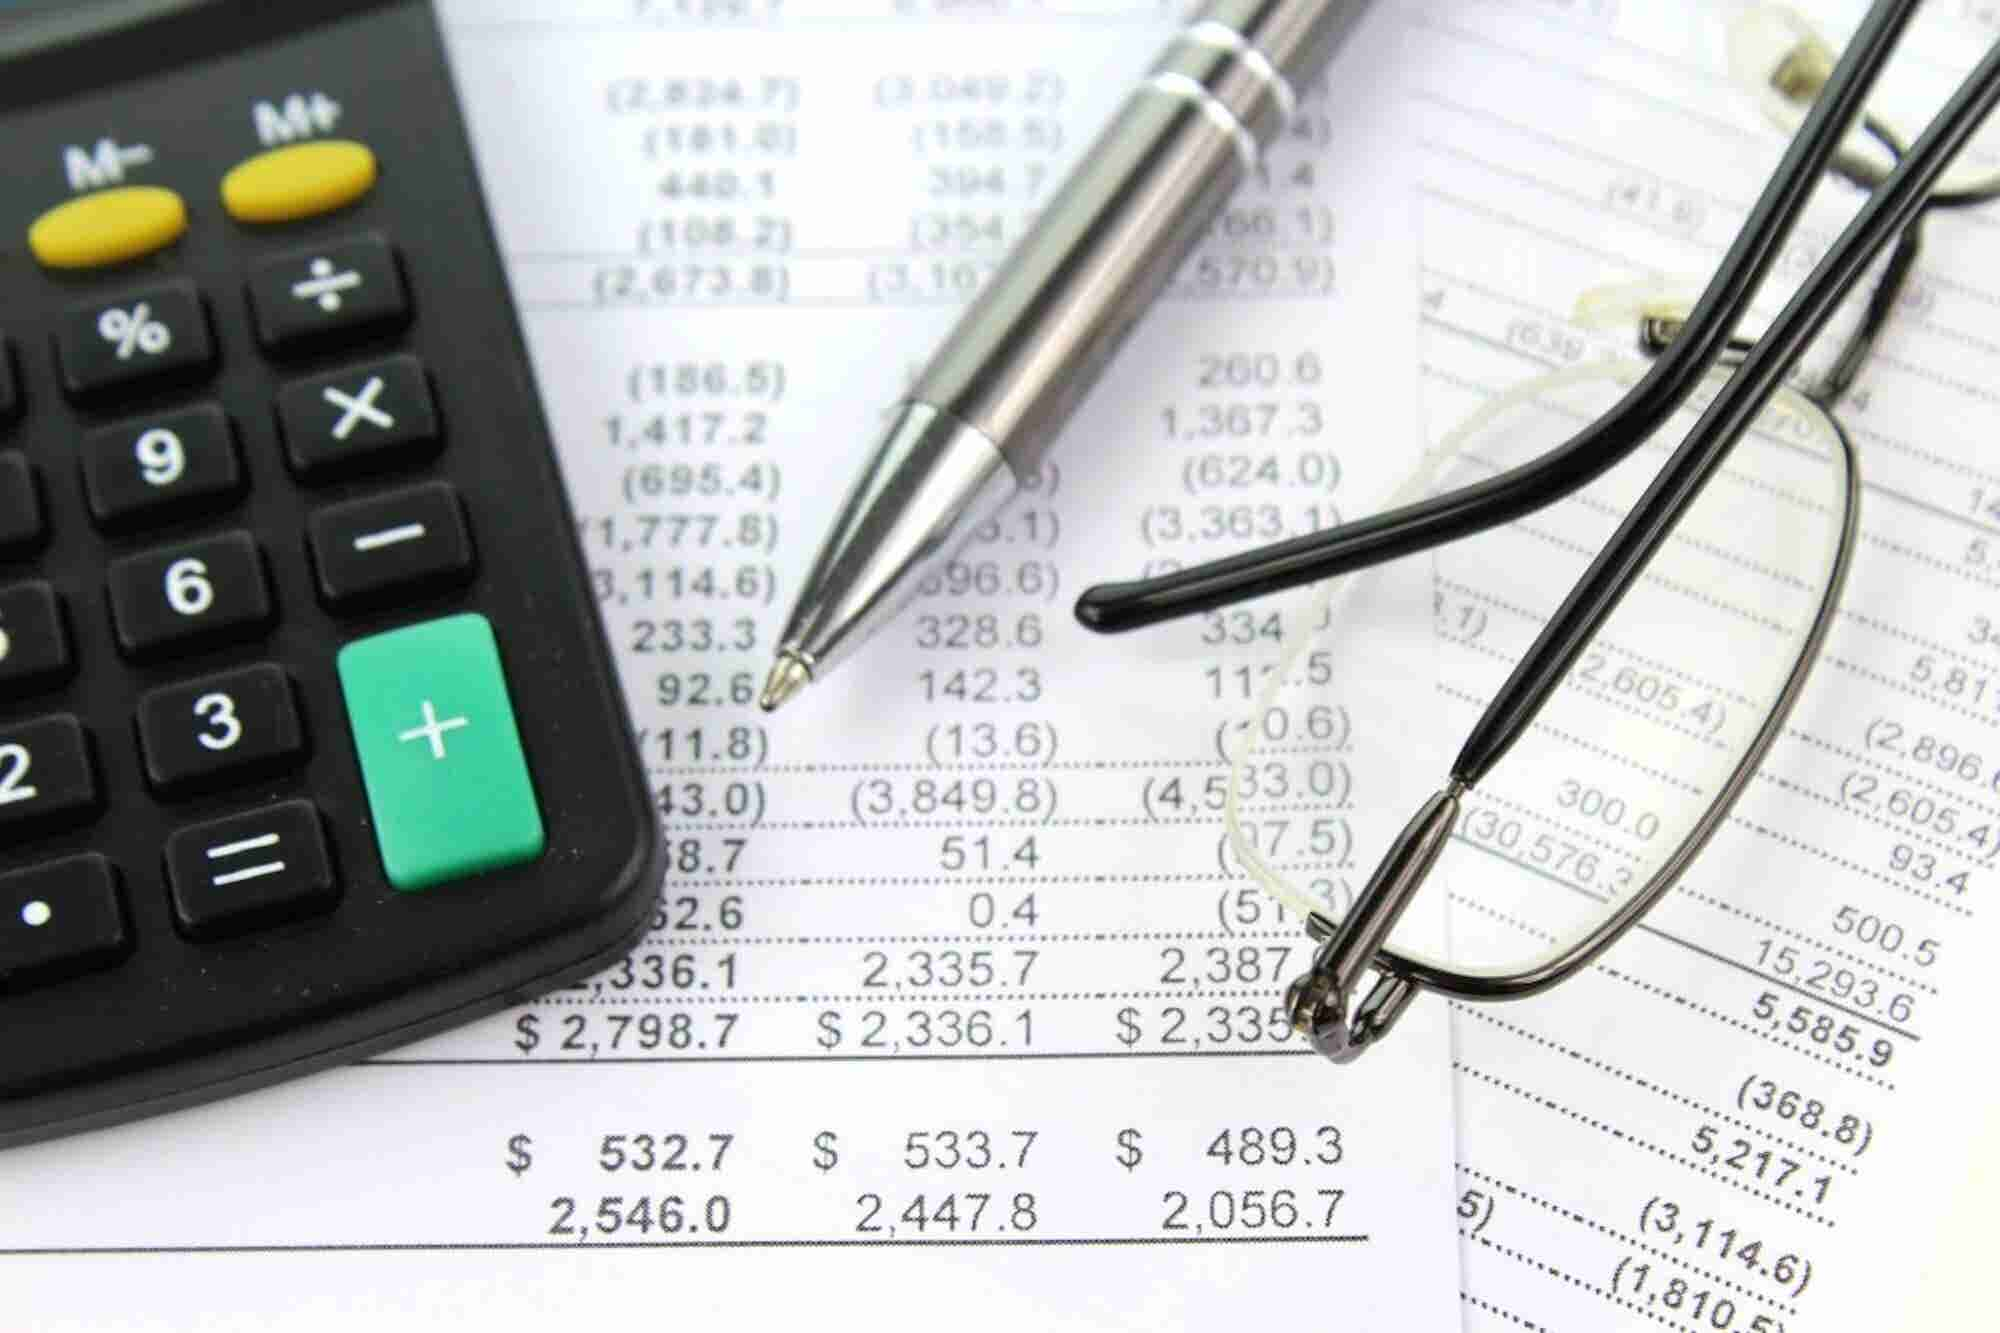 Need Accounting Help? Learn How to Use QuickBooks for Less Than $20.